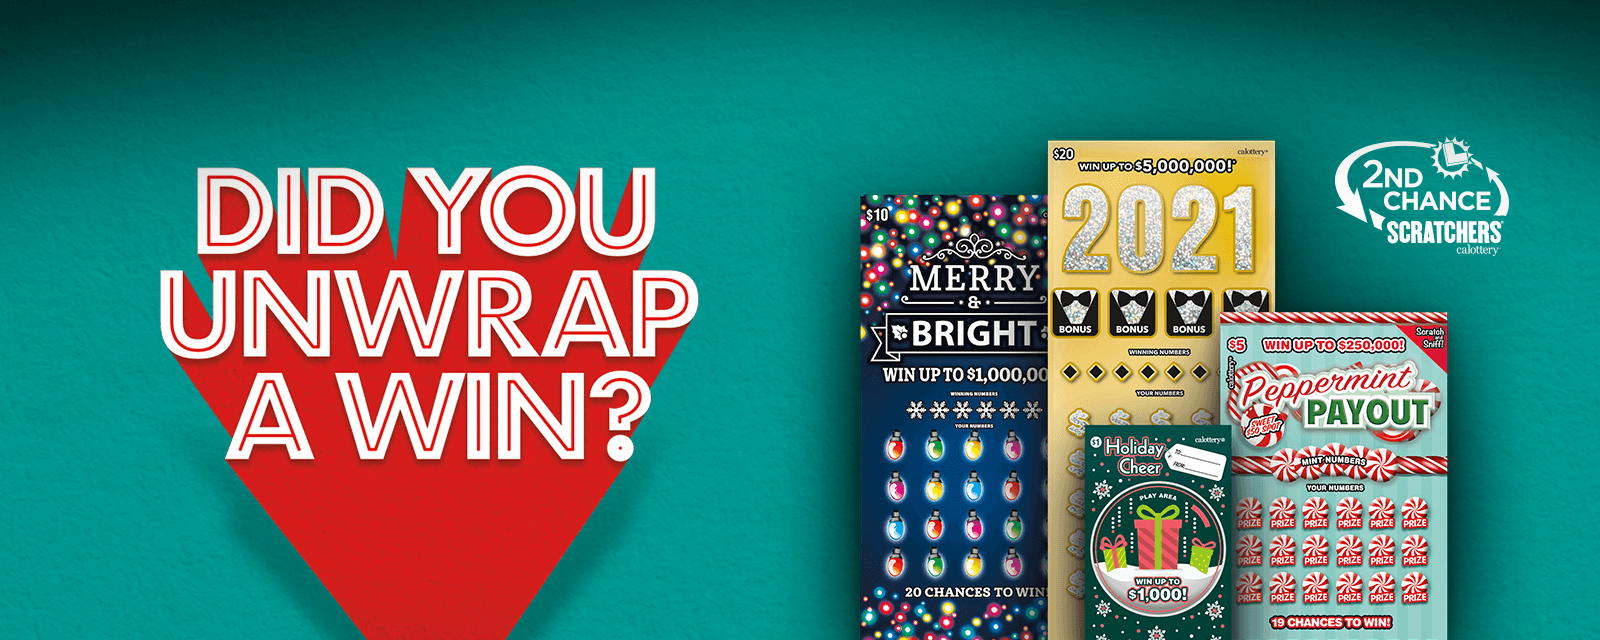 Holiday Scratchers Promo Ended Message on green background